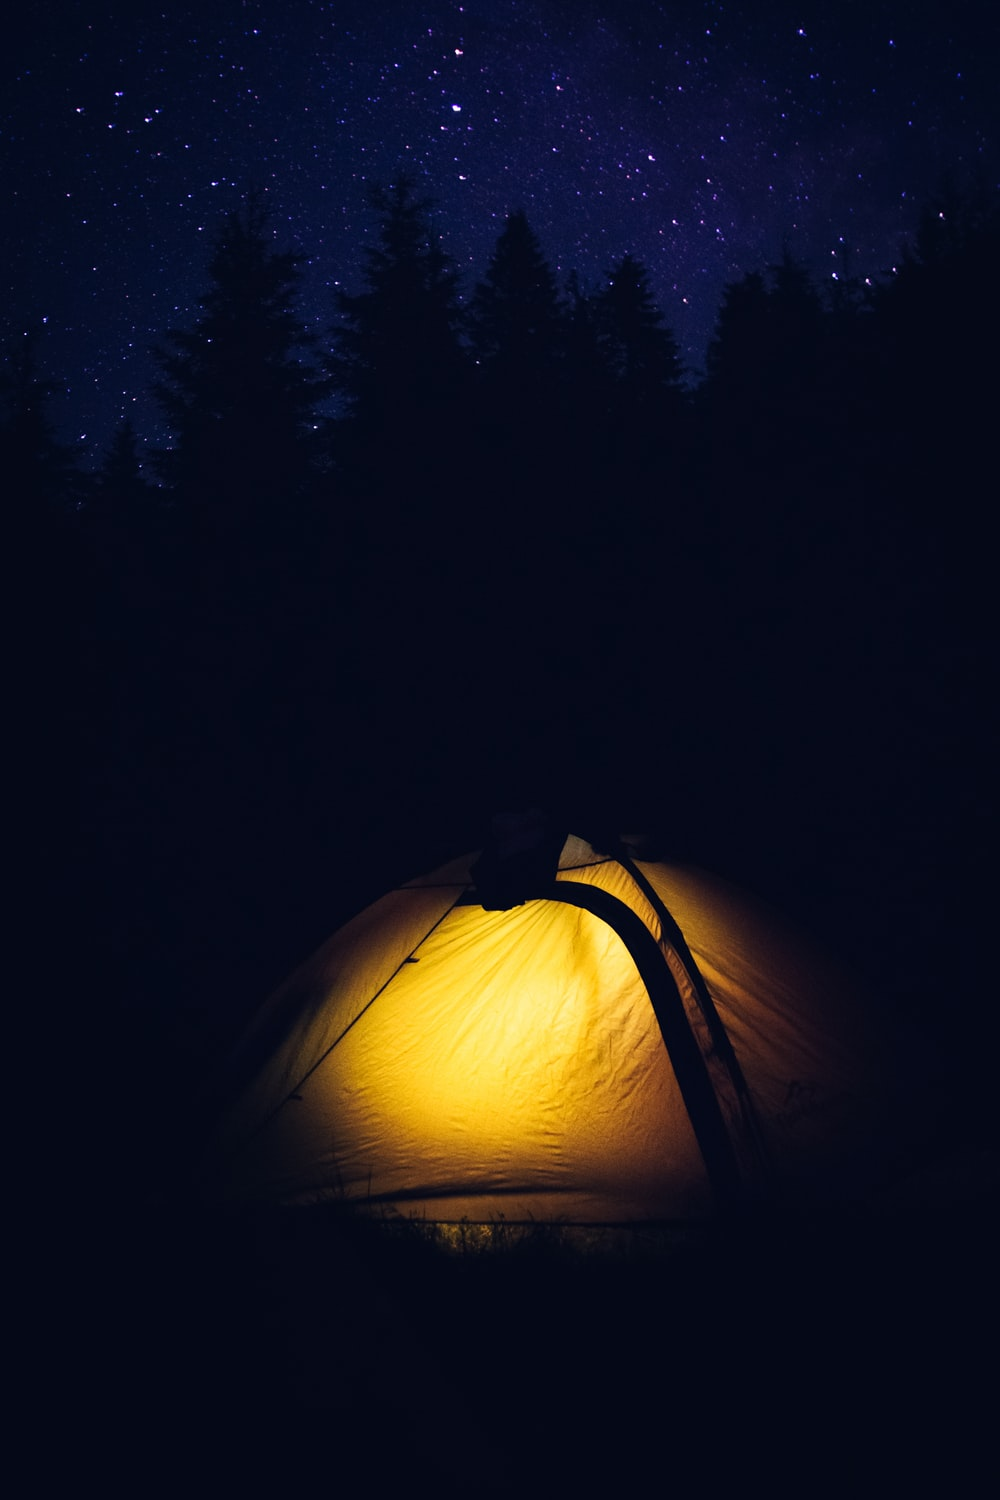 white and black camping tent